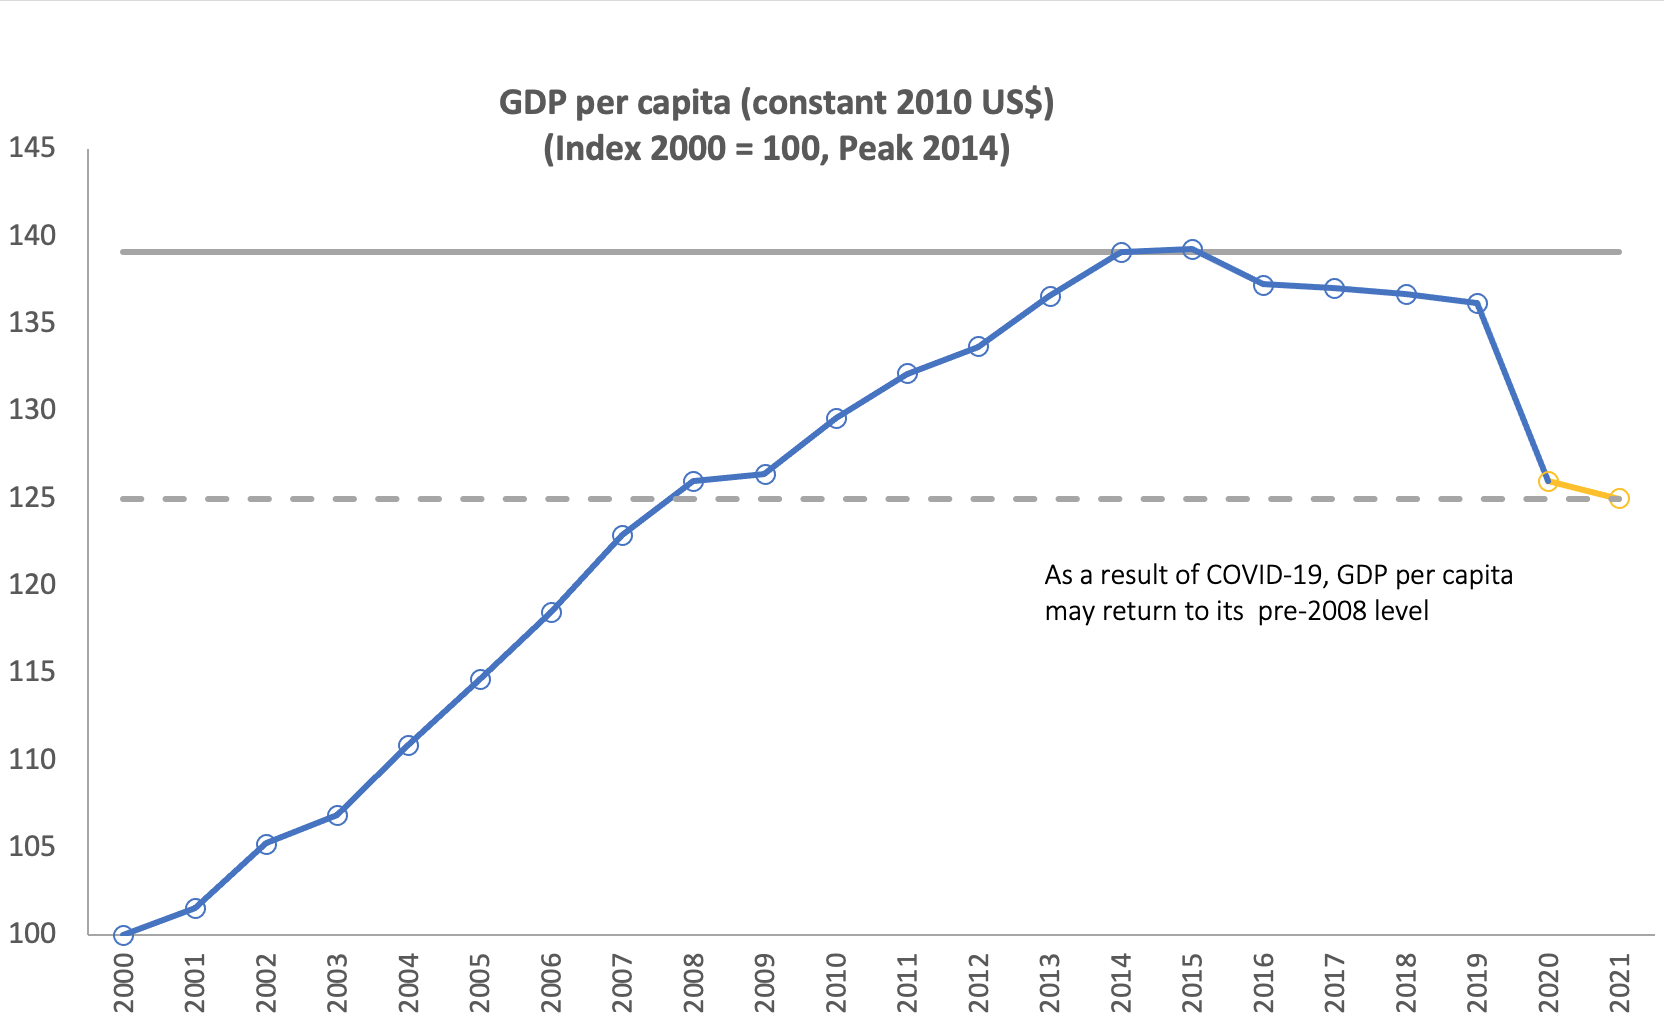 Chart showing GDP rose for Sub Saharan Africa until about 2013-2014 then held steady, and is now projected to drop sharply back to pre-2008 levels